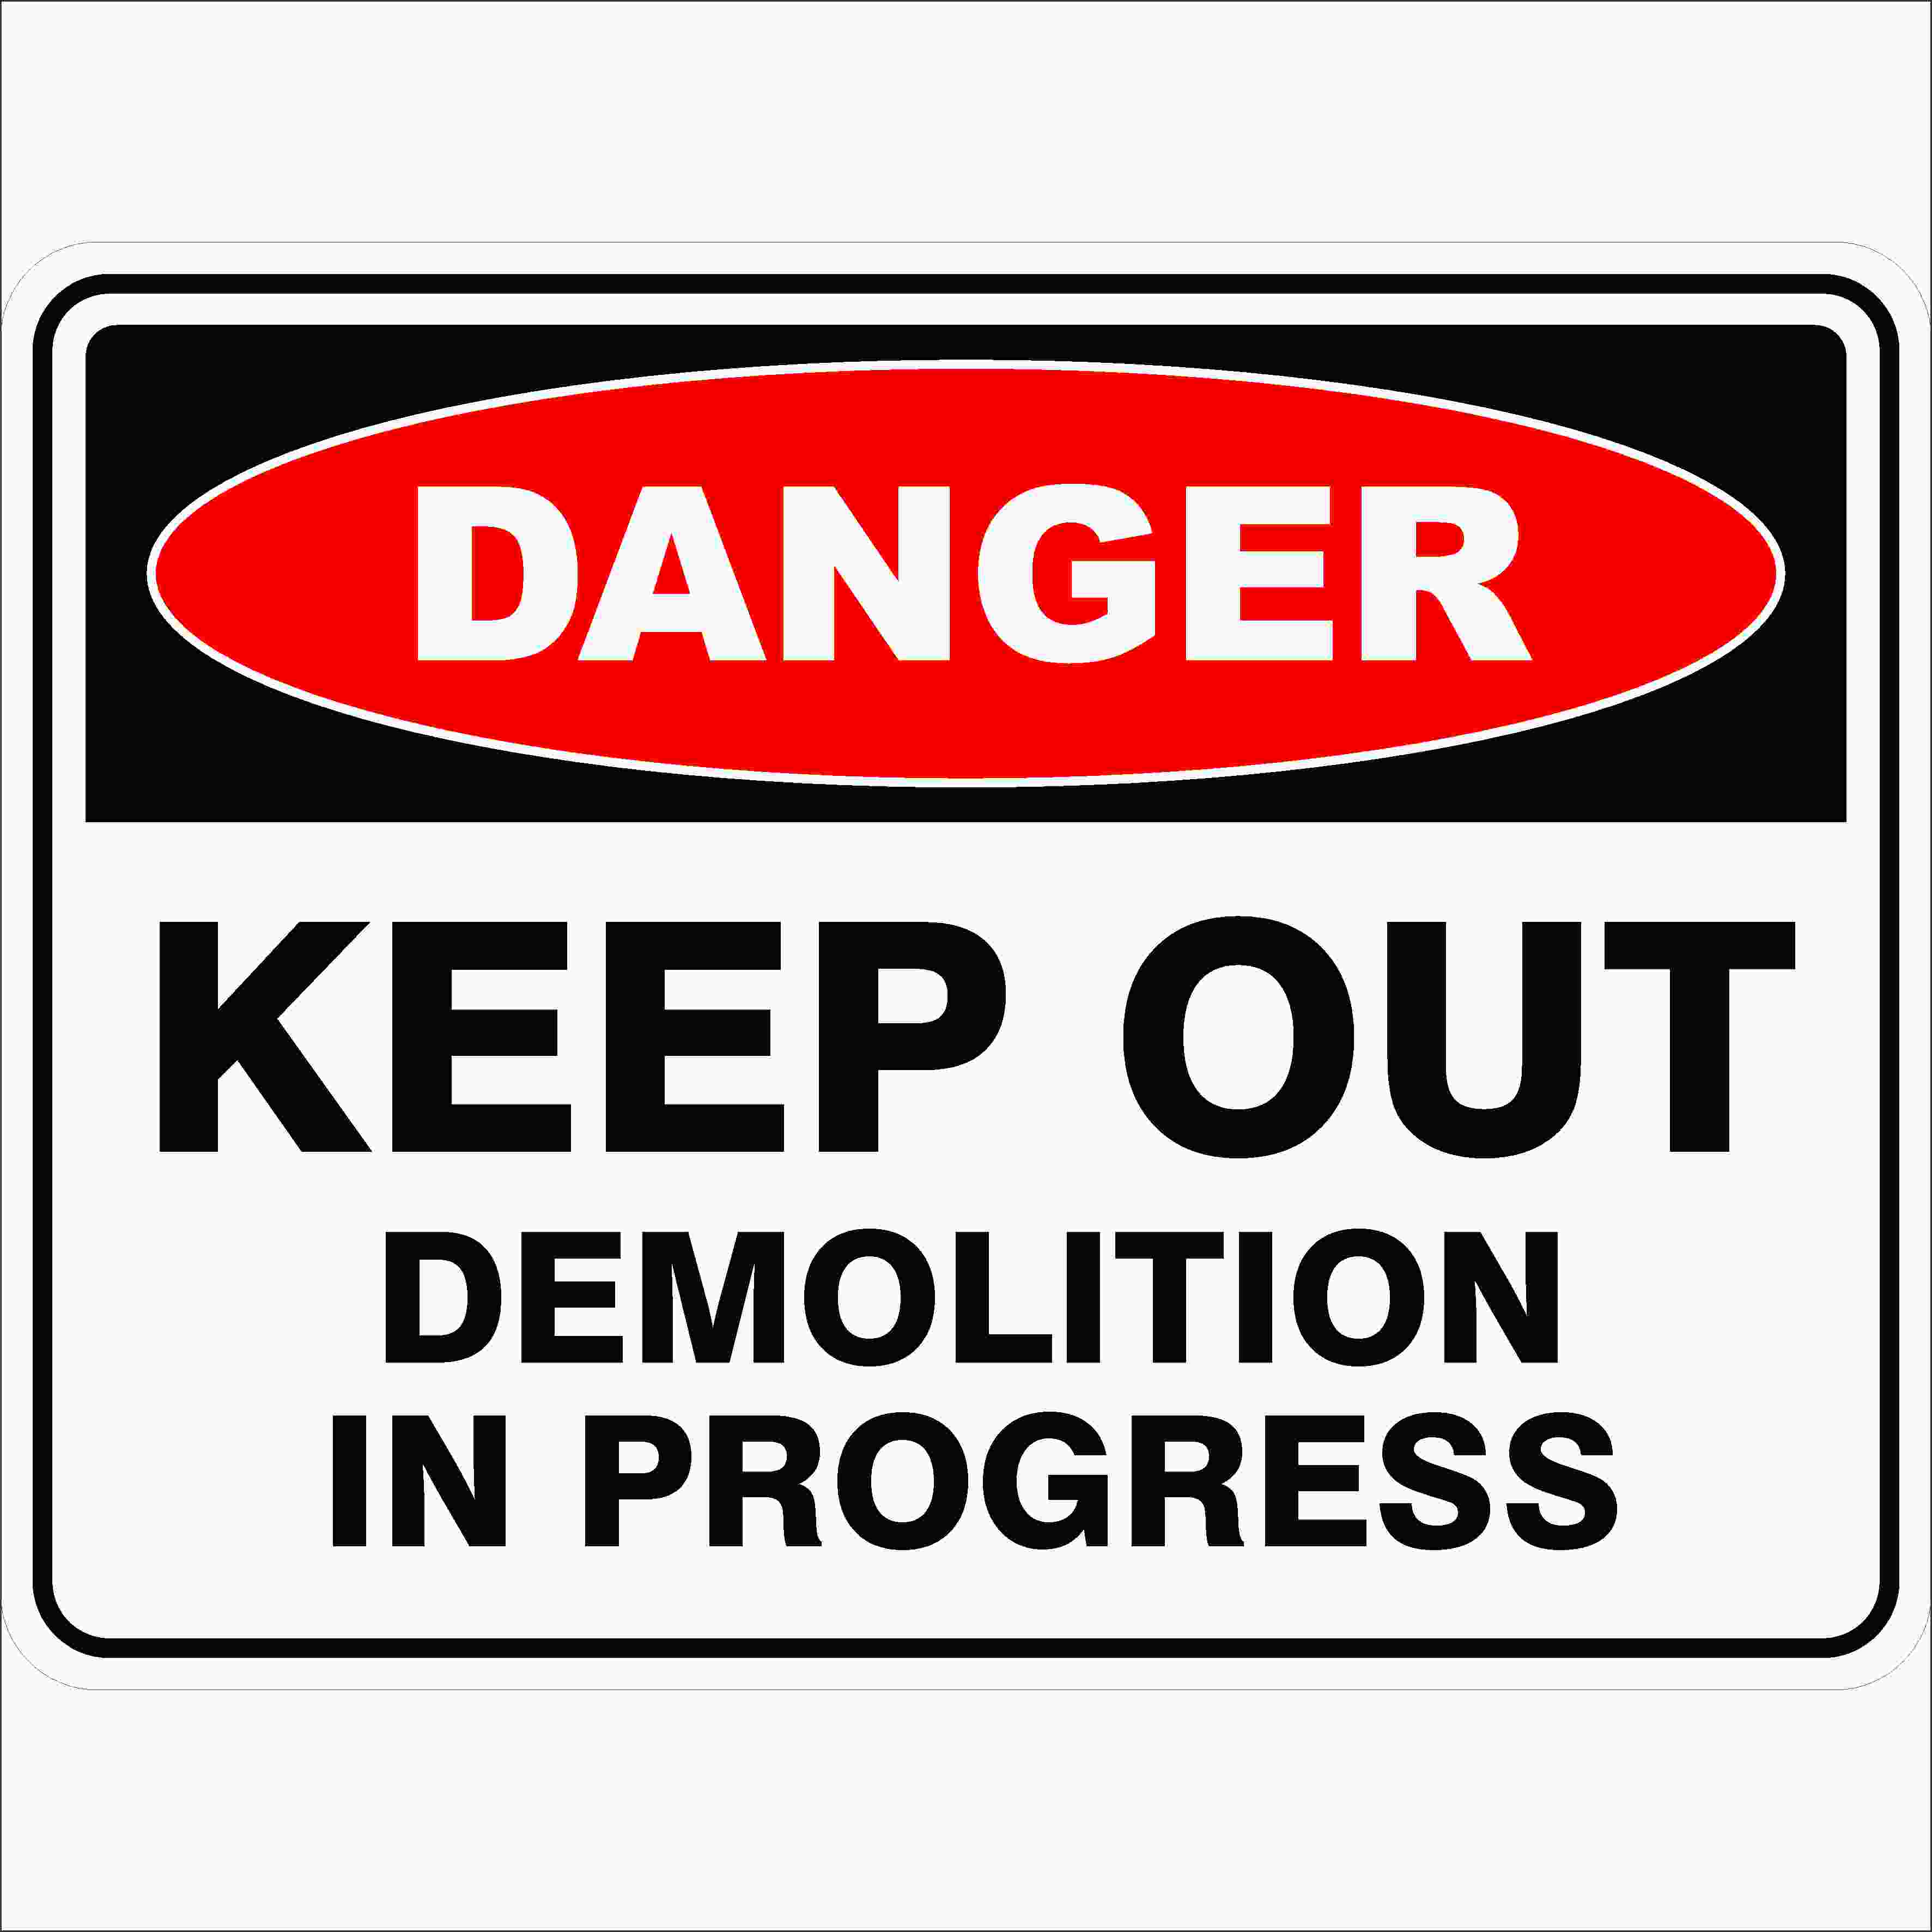 keep out demolition in progress